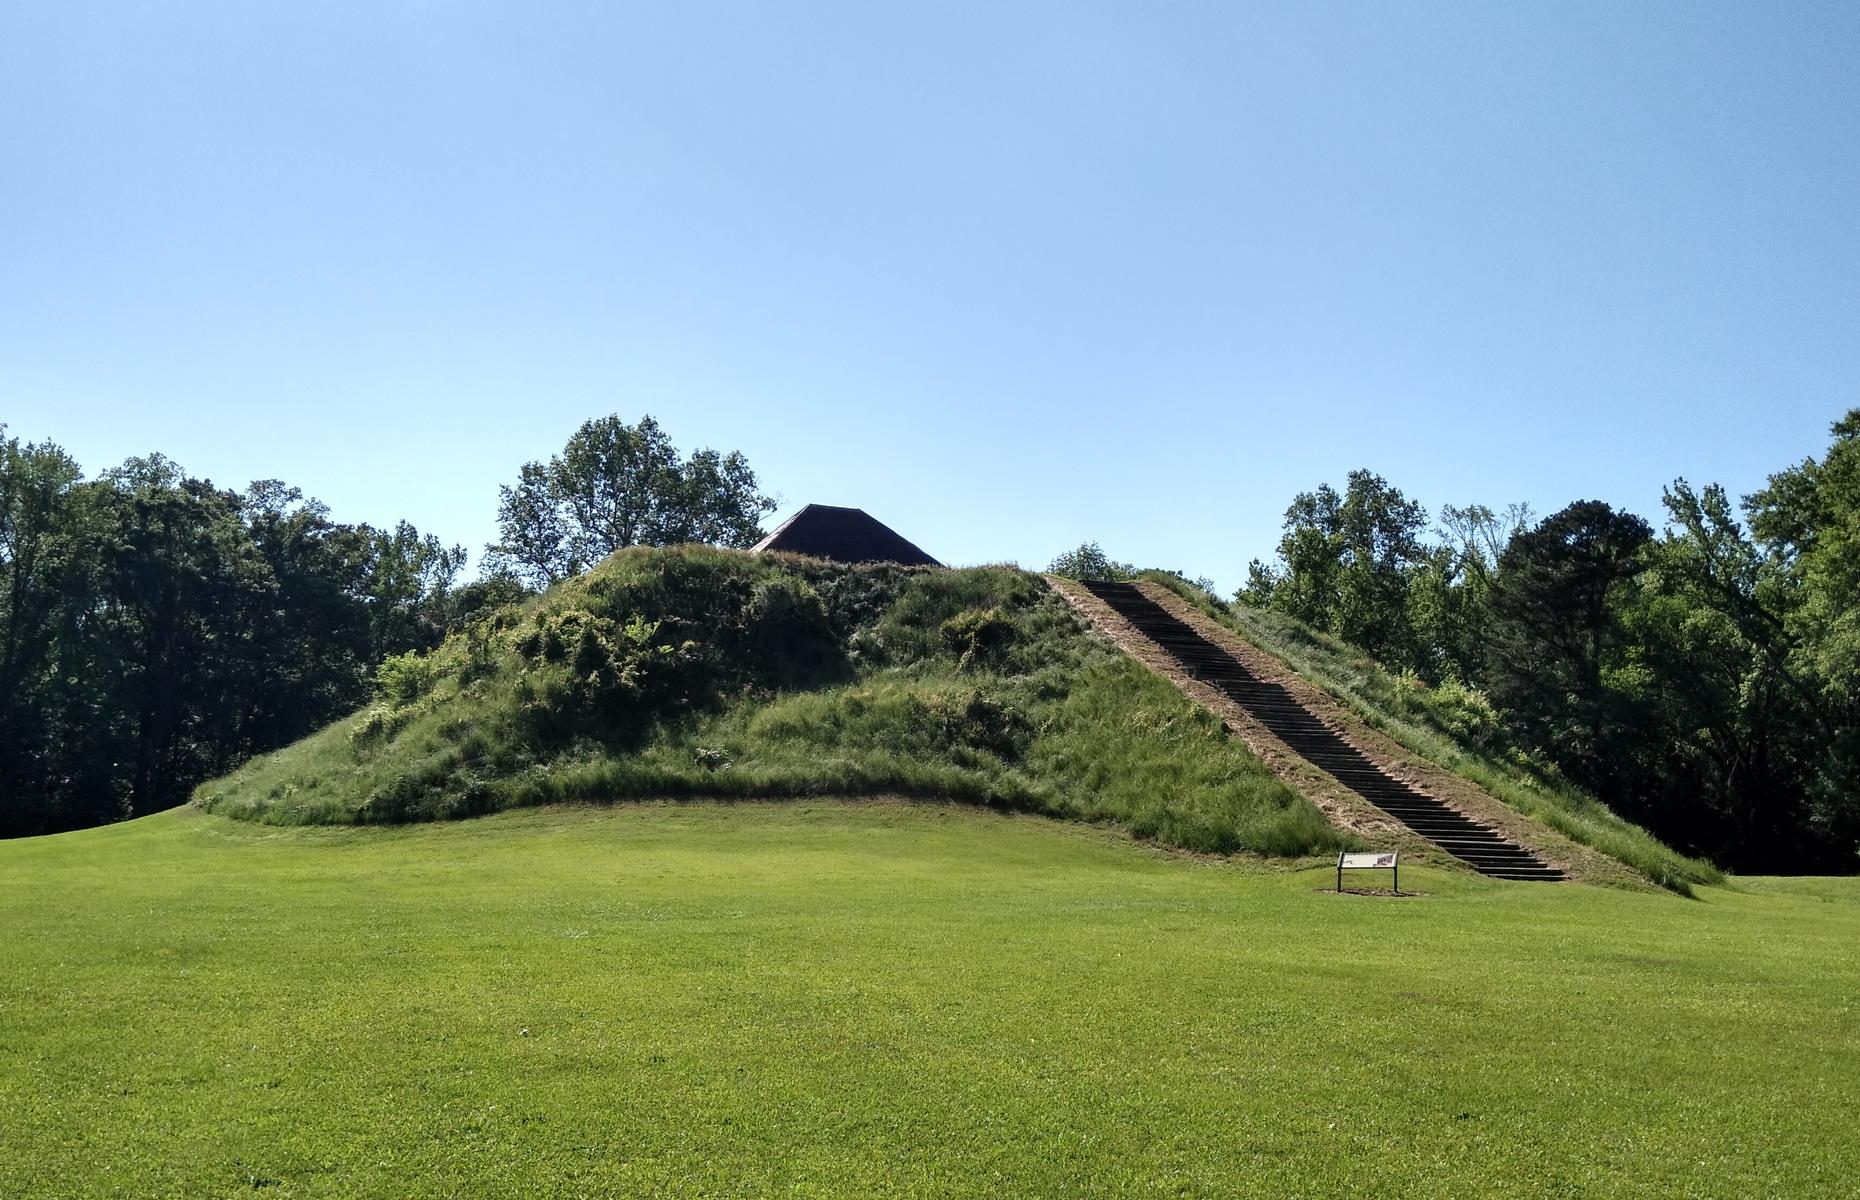 """Slide 15 of 27: National Geographic once described Moundville as """"The Big Apple of the 14th Century"""". The 29 flat-topped earthen mounds, crafted by Native Mississippians around 800 years ago, may not quite measure up to the skyscrapers of modern New York, but they speak of a sophisticated and advanced civilization."""